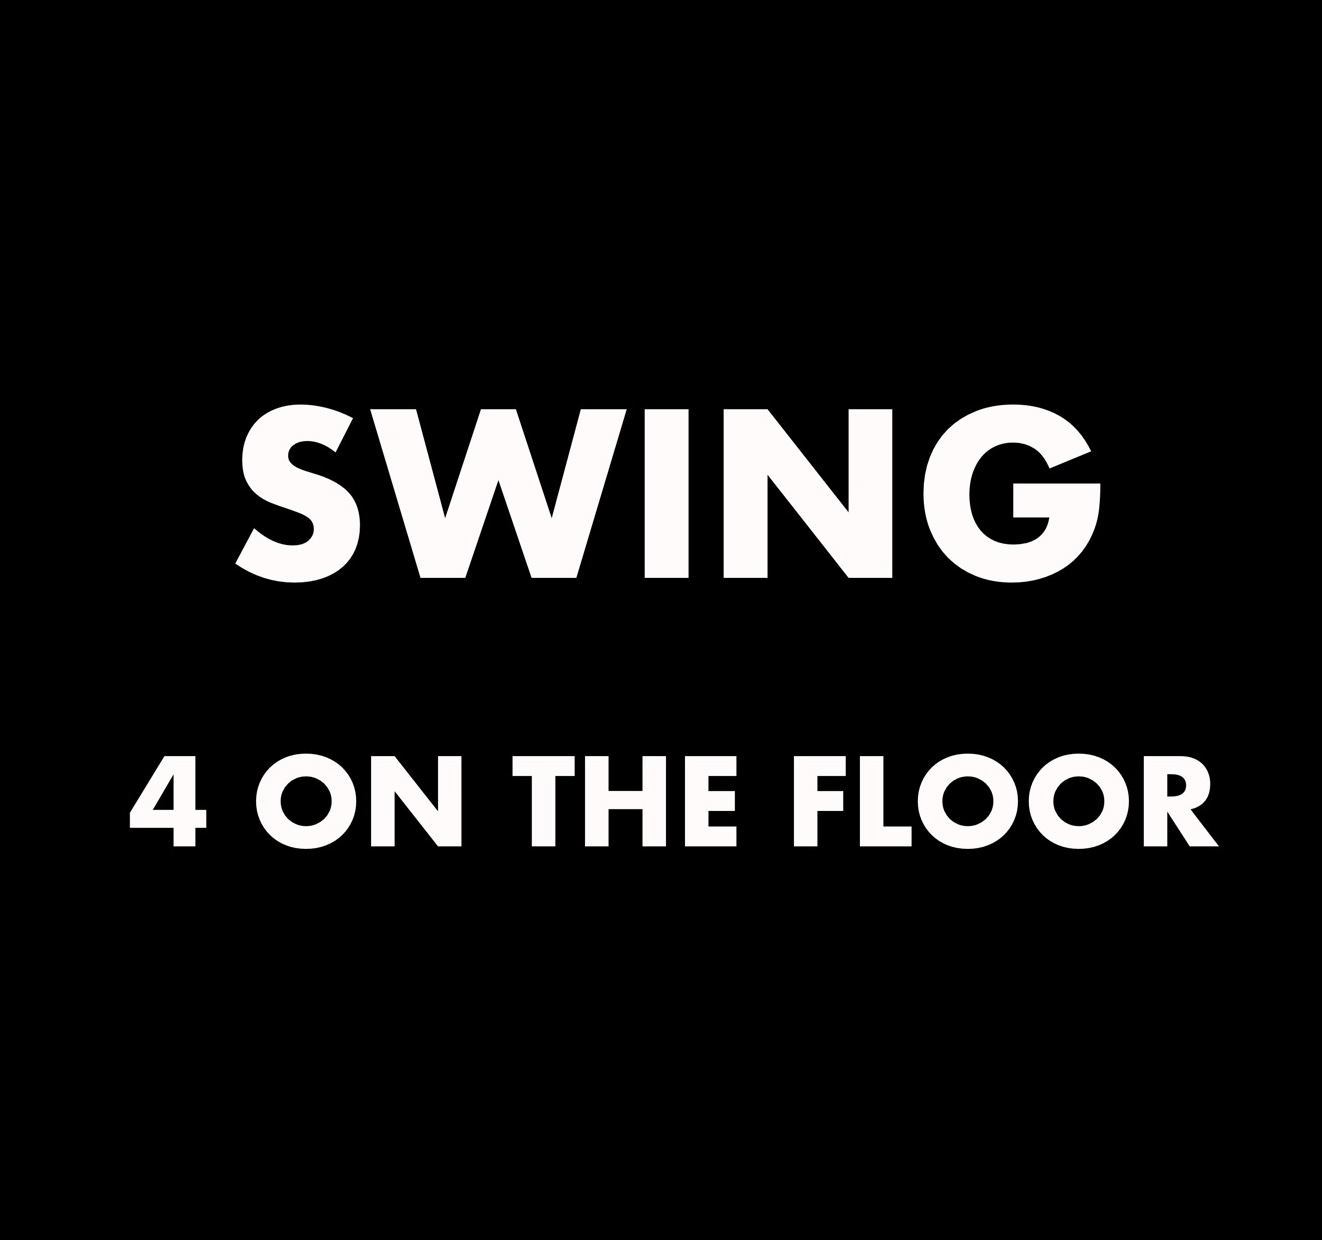 Swing (4 On The Floor)